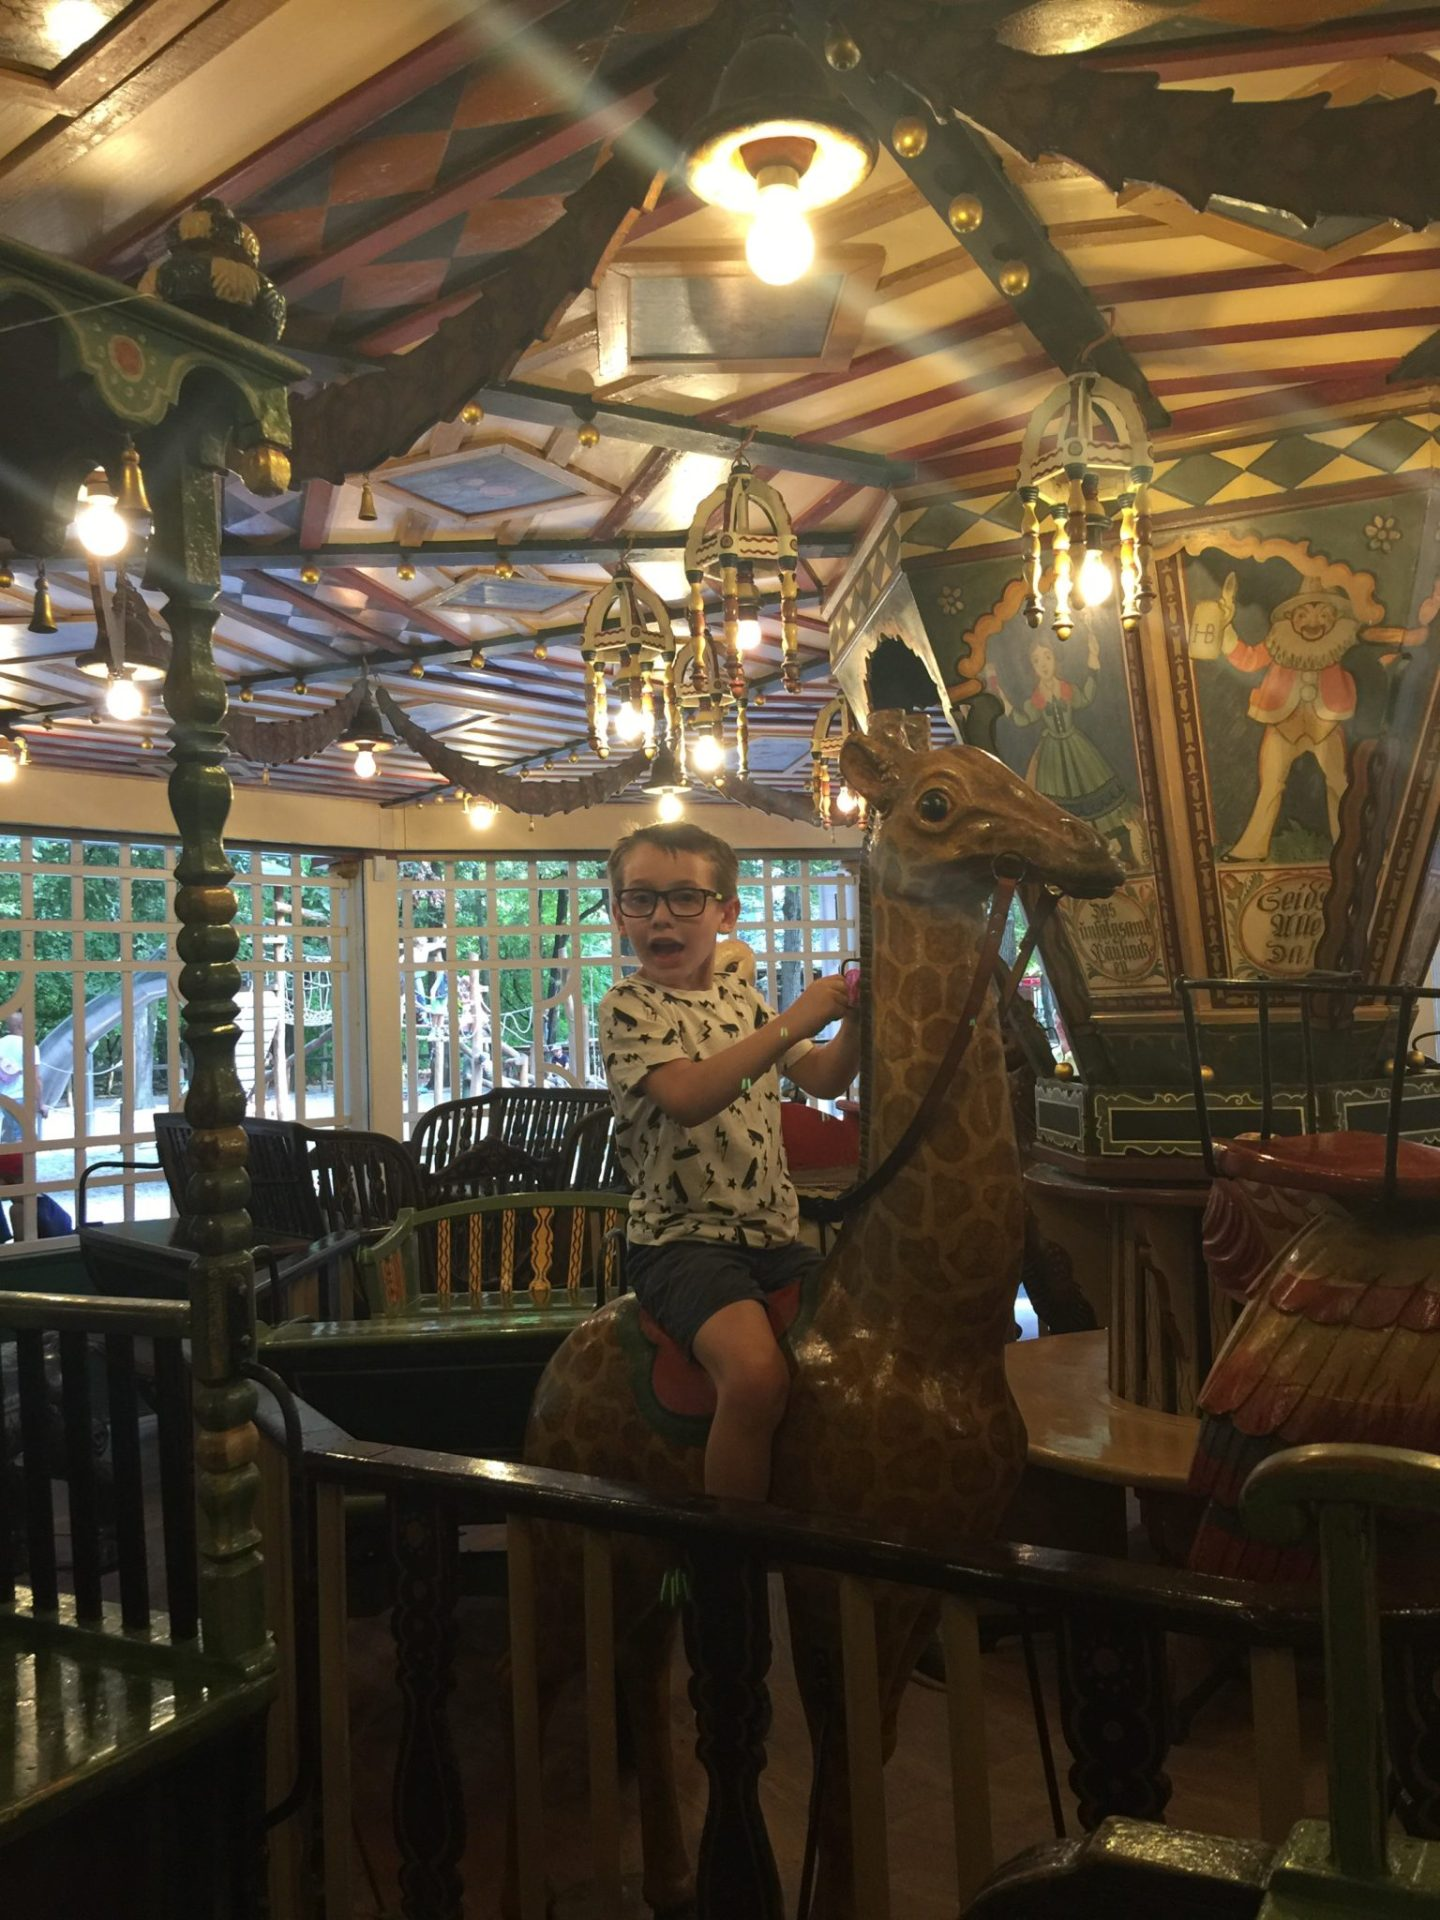 Carousel in Englisch Garten, by the Chinese Tower